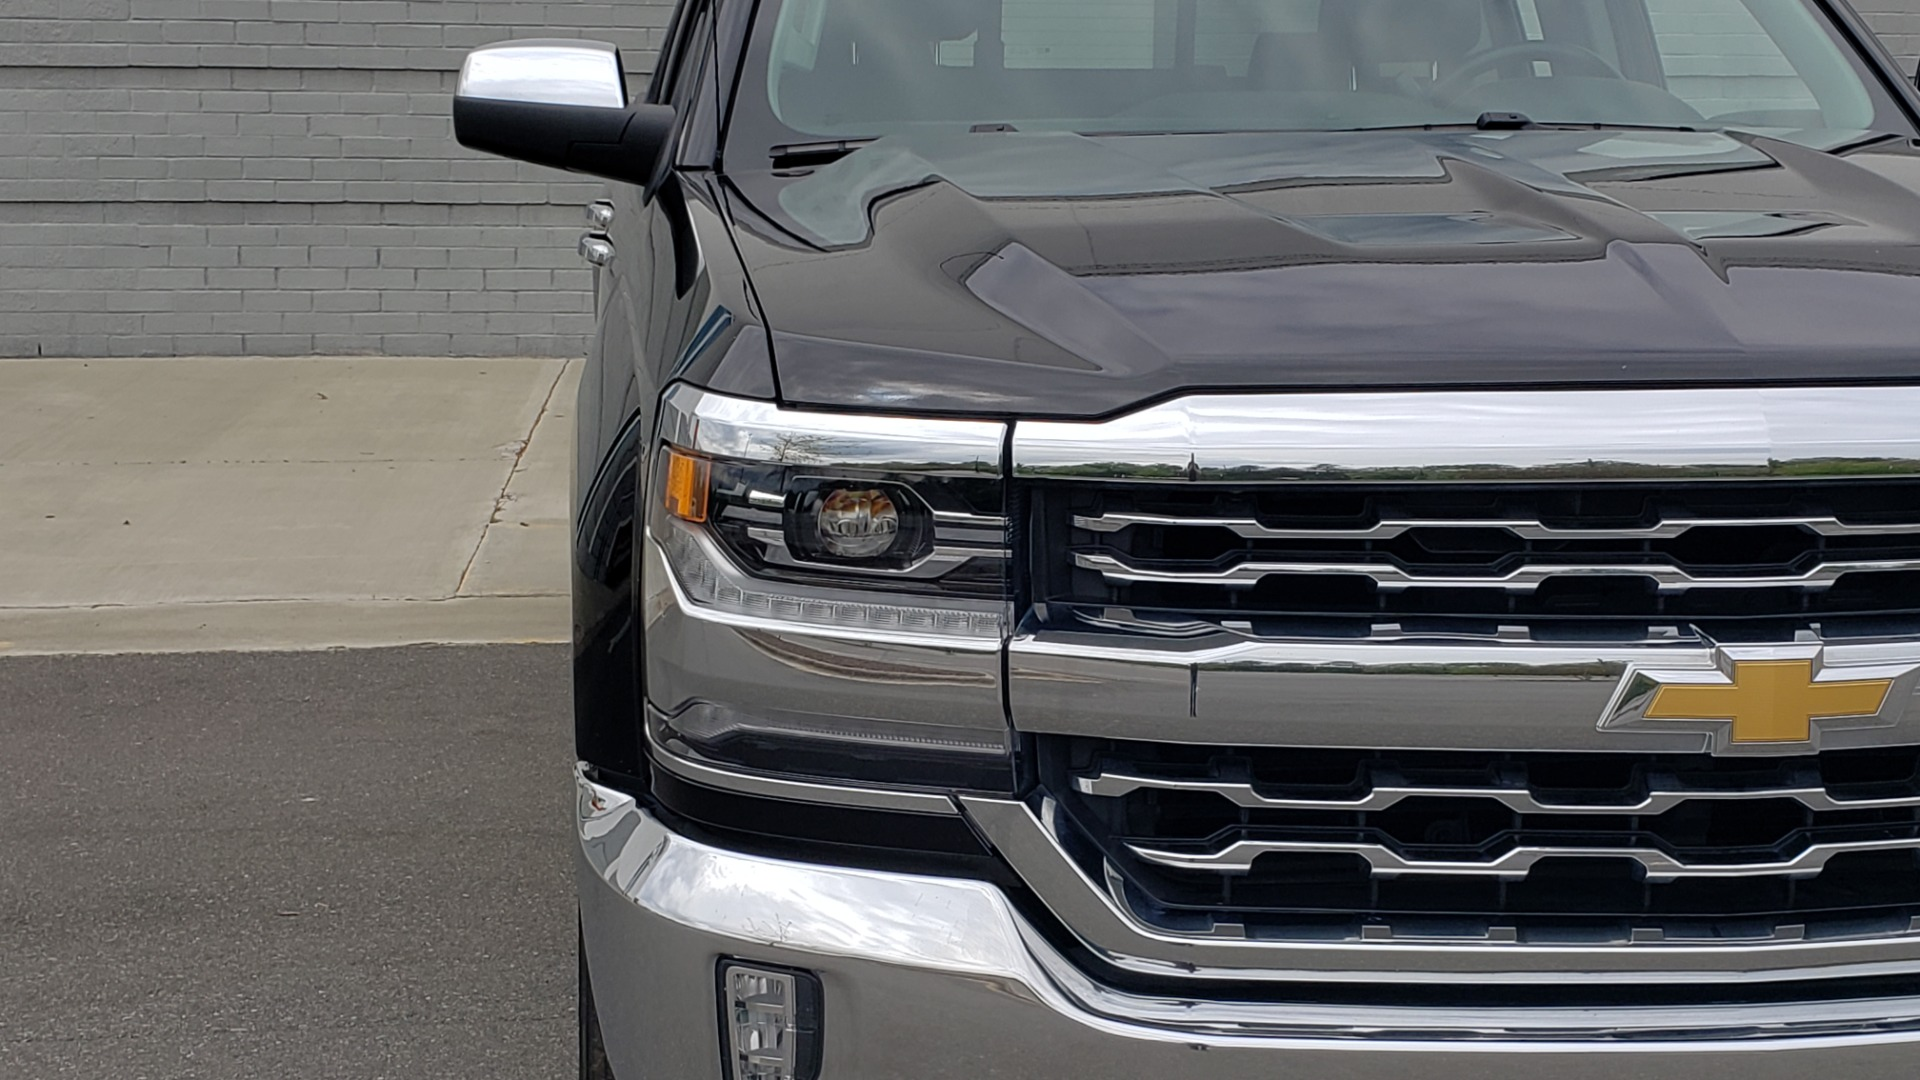 Used 2018 Chevrolet SILVERADO 1500 LTZ 1LZ / 5.3L V8 / 2WD / 6-SPD AUTO / DOUBLECAB / REARVIEW for sale Sold at Formula Imports in Charlotte NC 28227 15